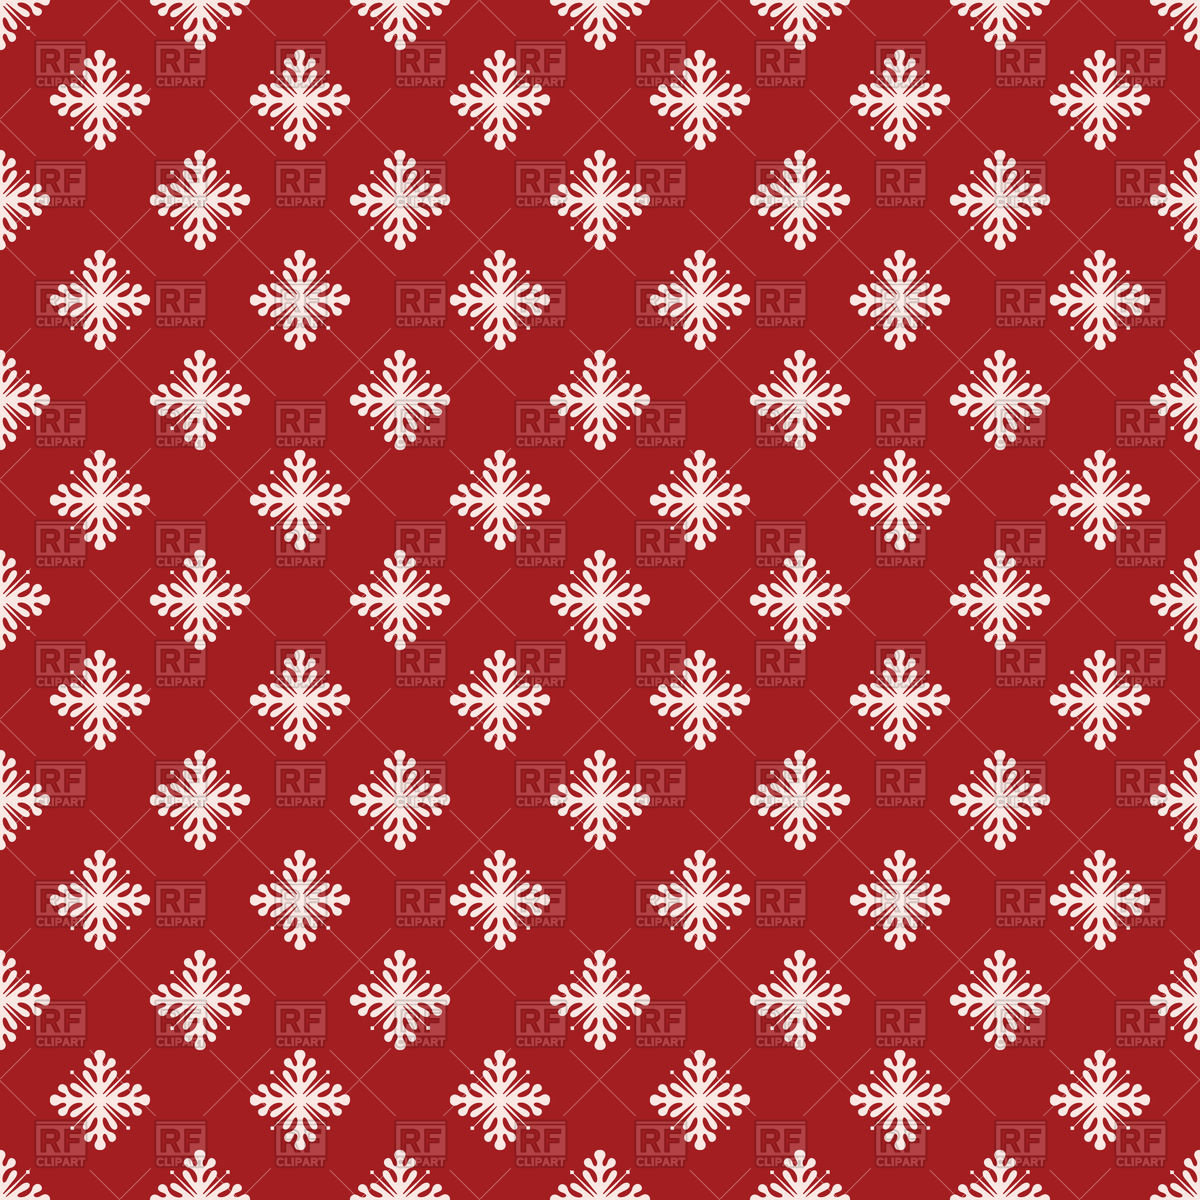 1200x1200 Seamless Snowflake Pattern On Red Background Vector Image Vector